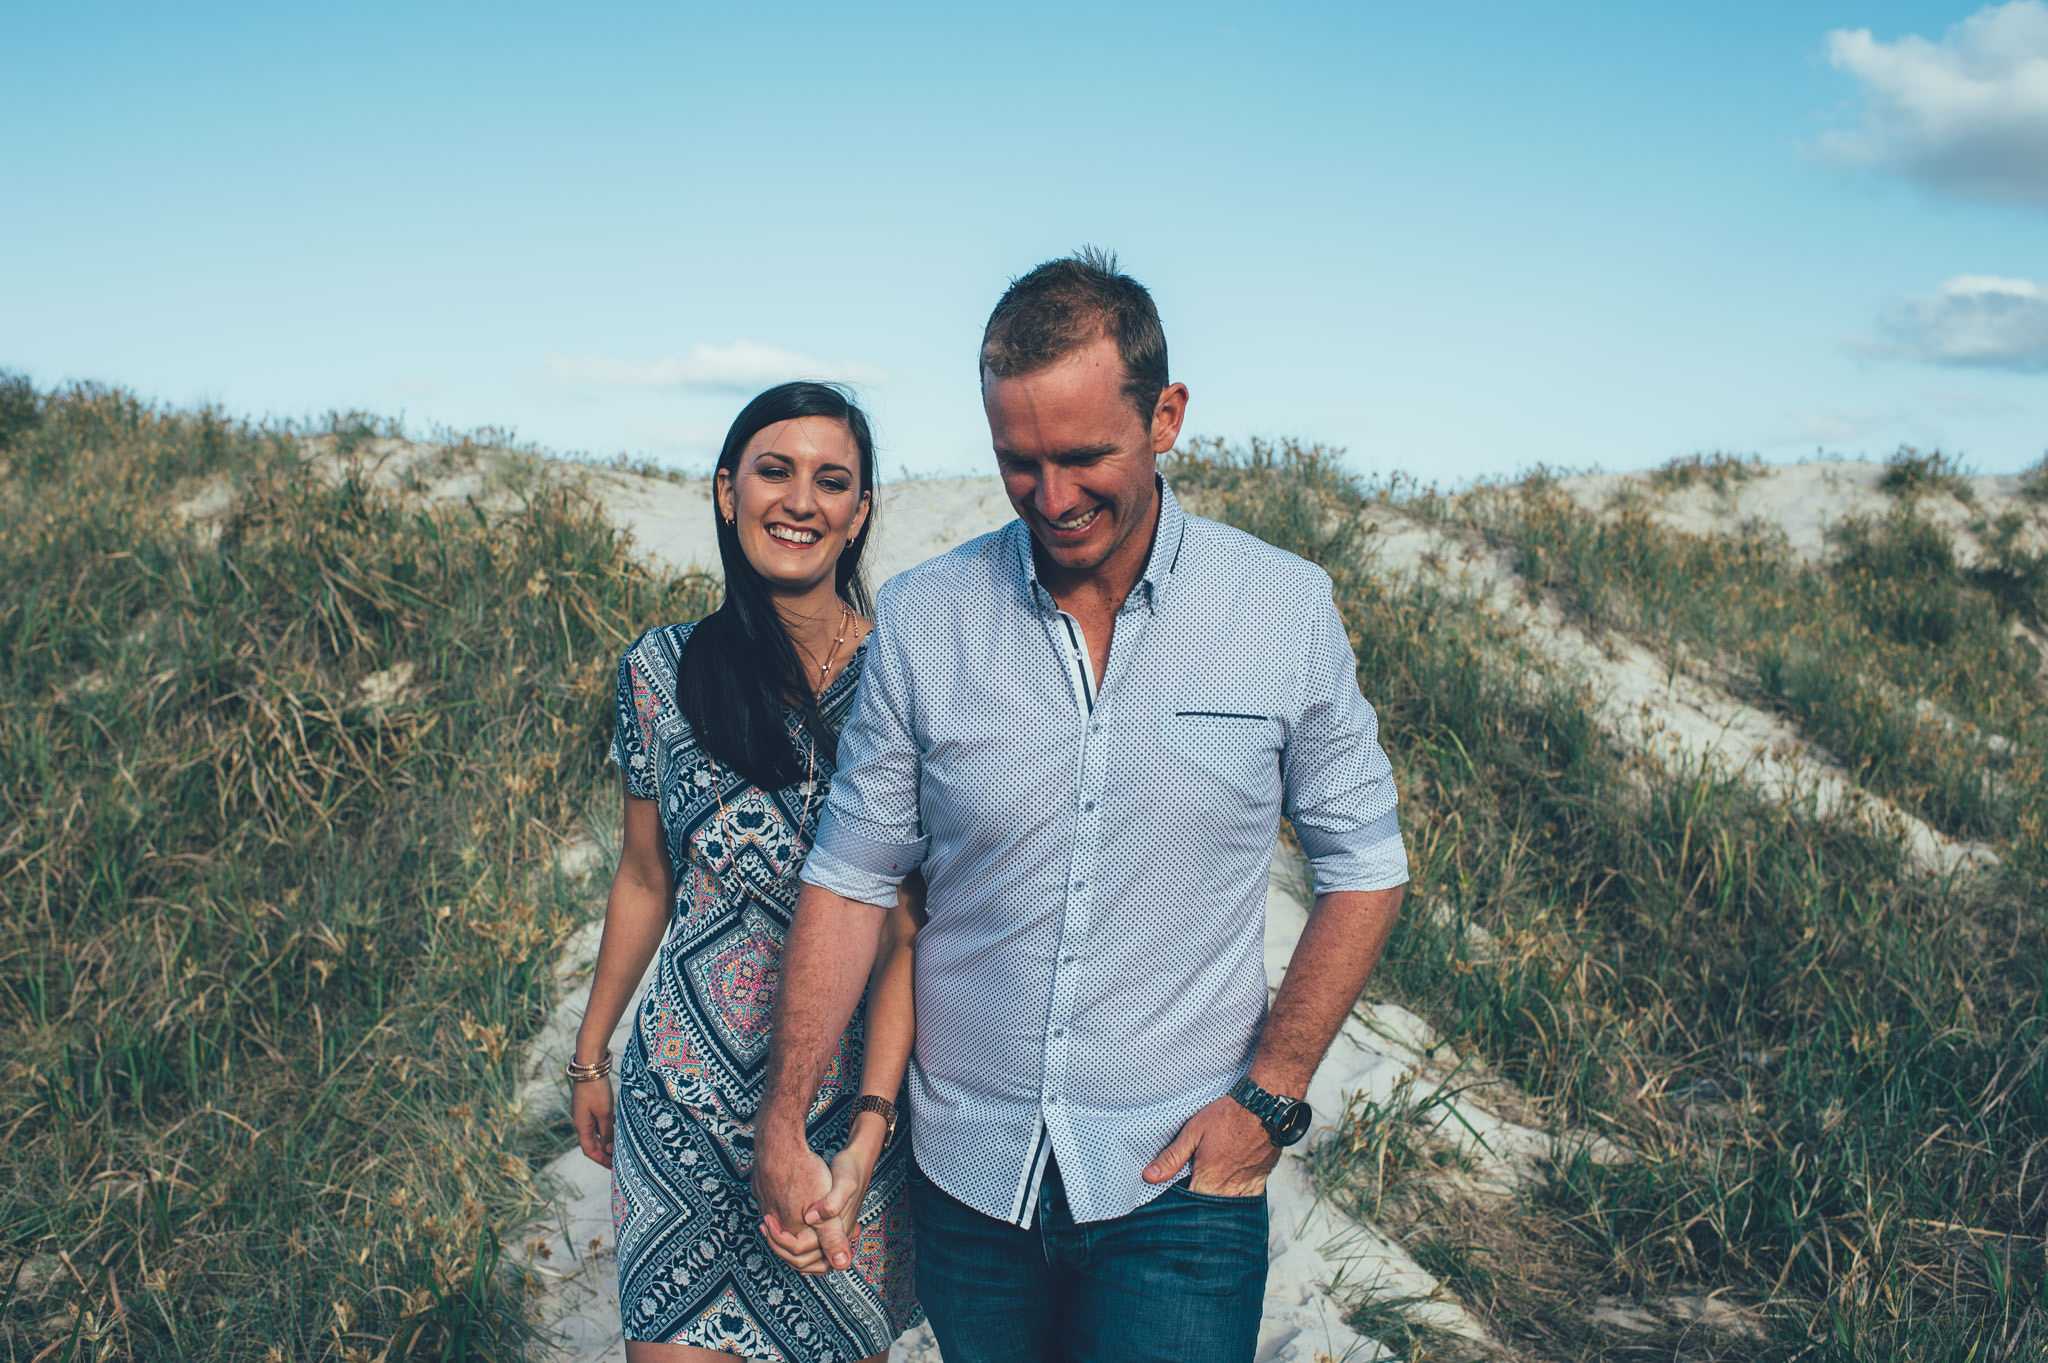 For your Engagement Photography Session choose clothing you are comfortable in & feel good in.